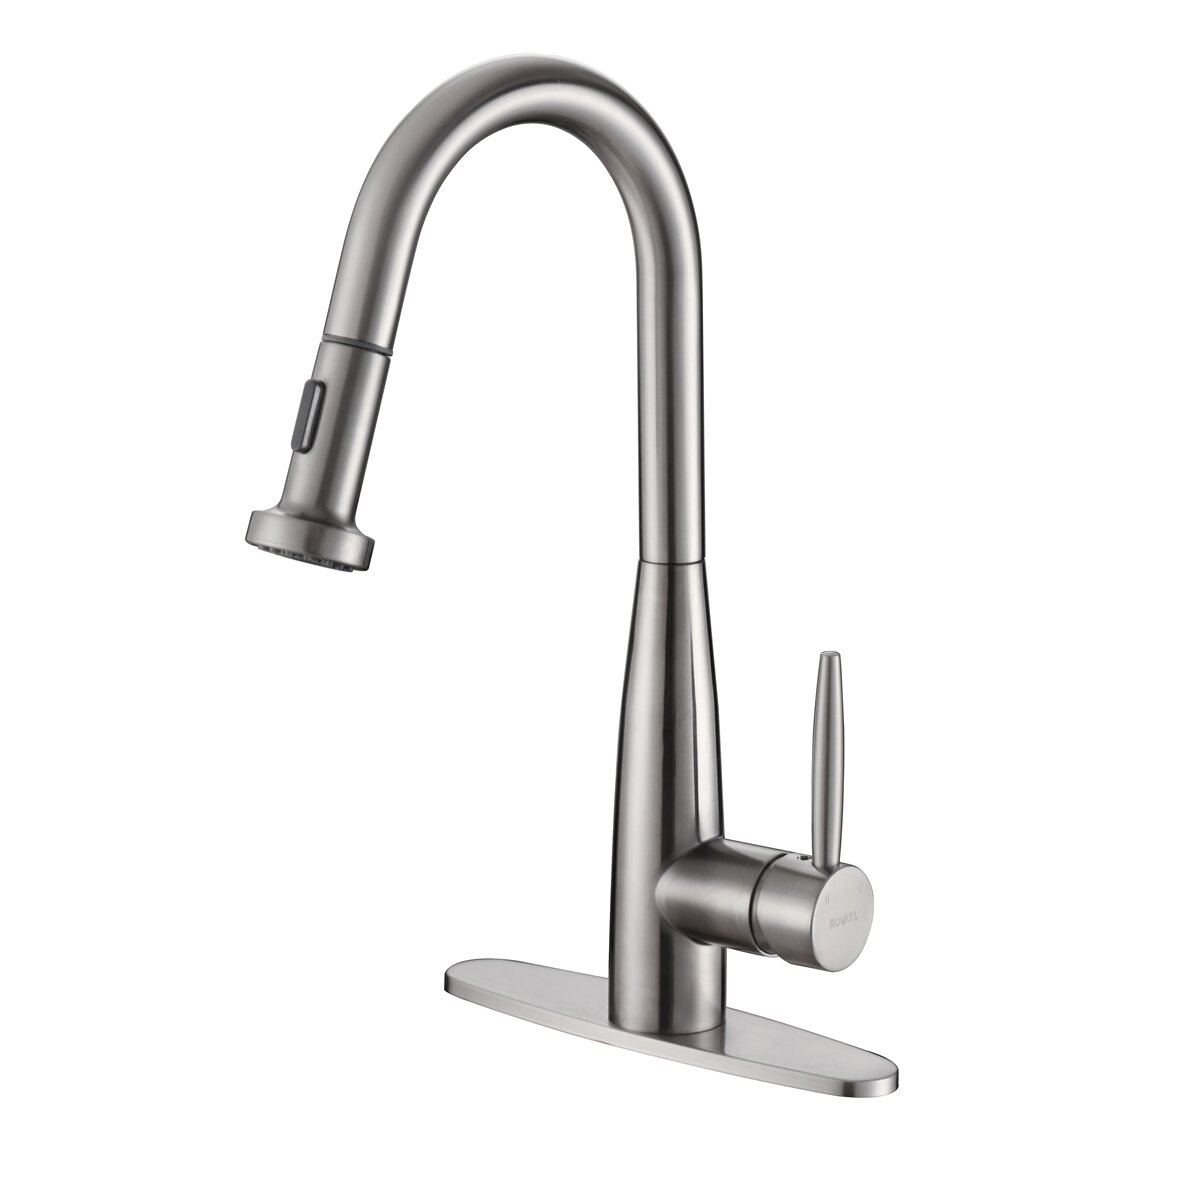 ruvati turino single handle kitchen faucet with pull out